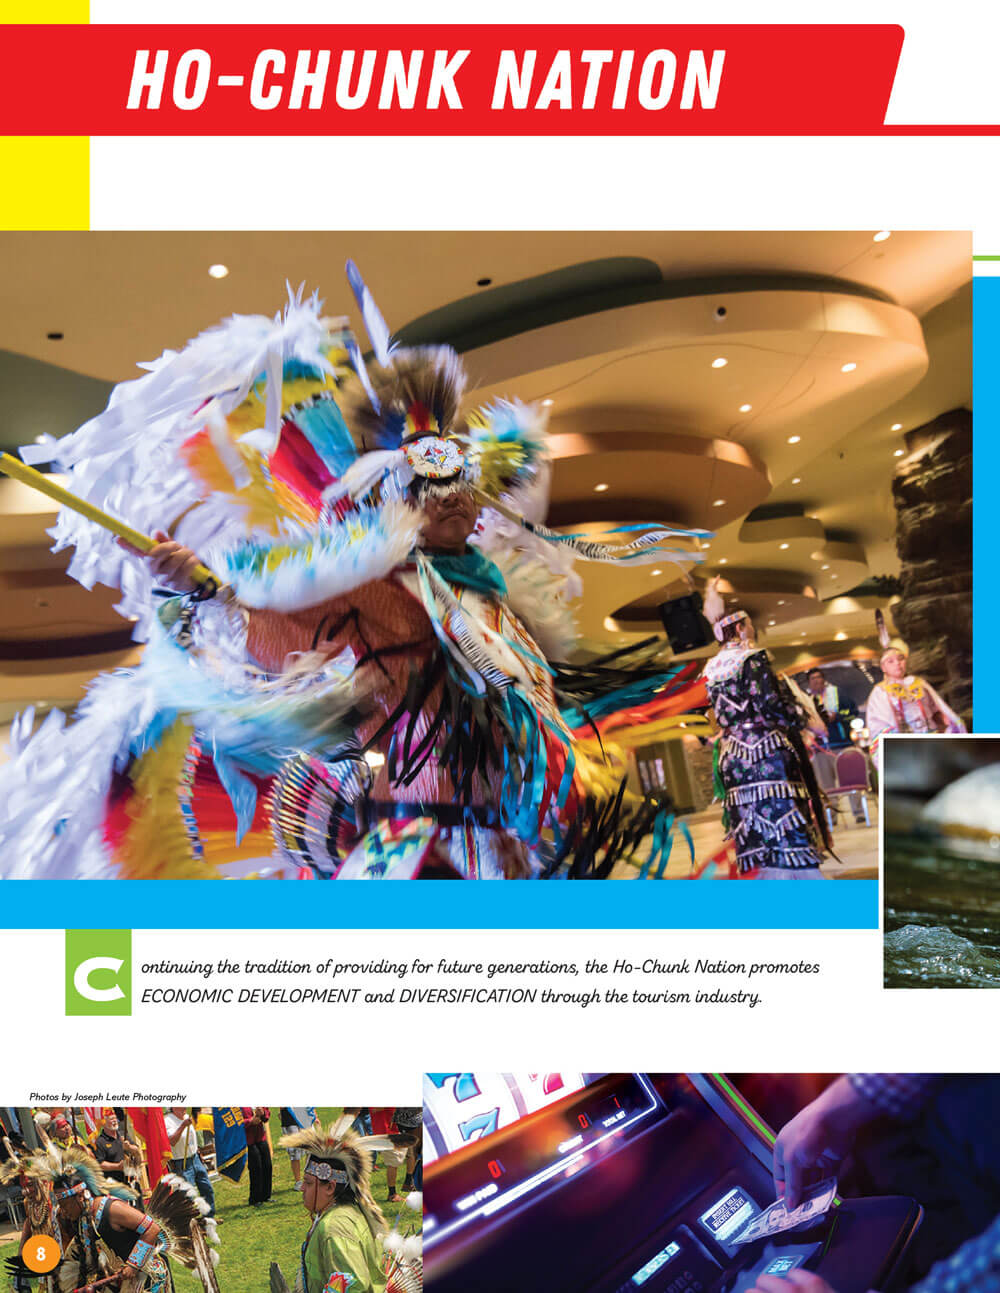 Native Wisconsin Travel Guide Brochure Spread - Ho-Chunk Nation